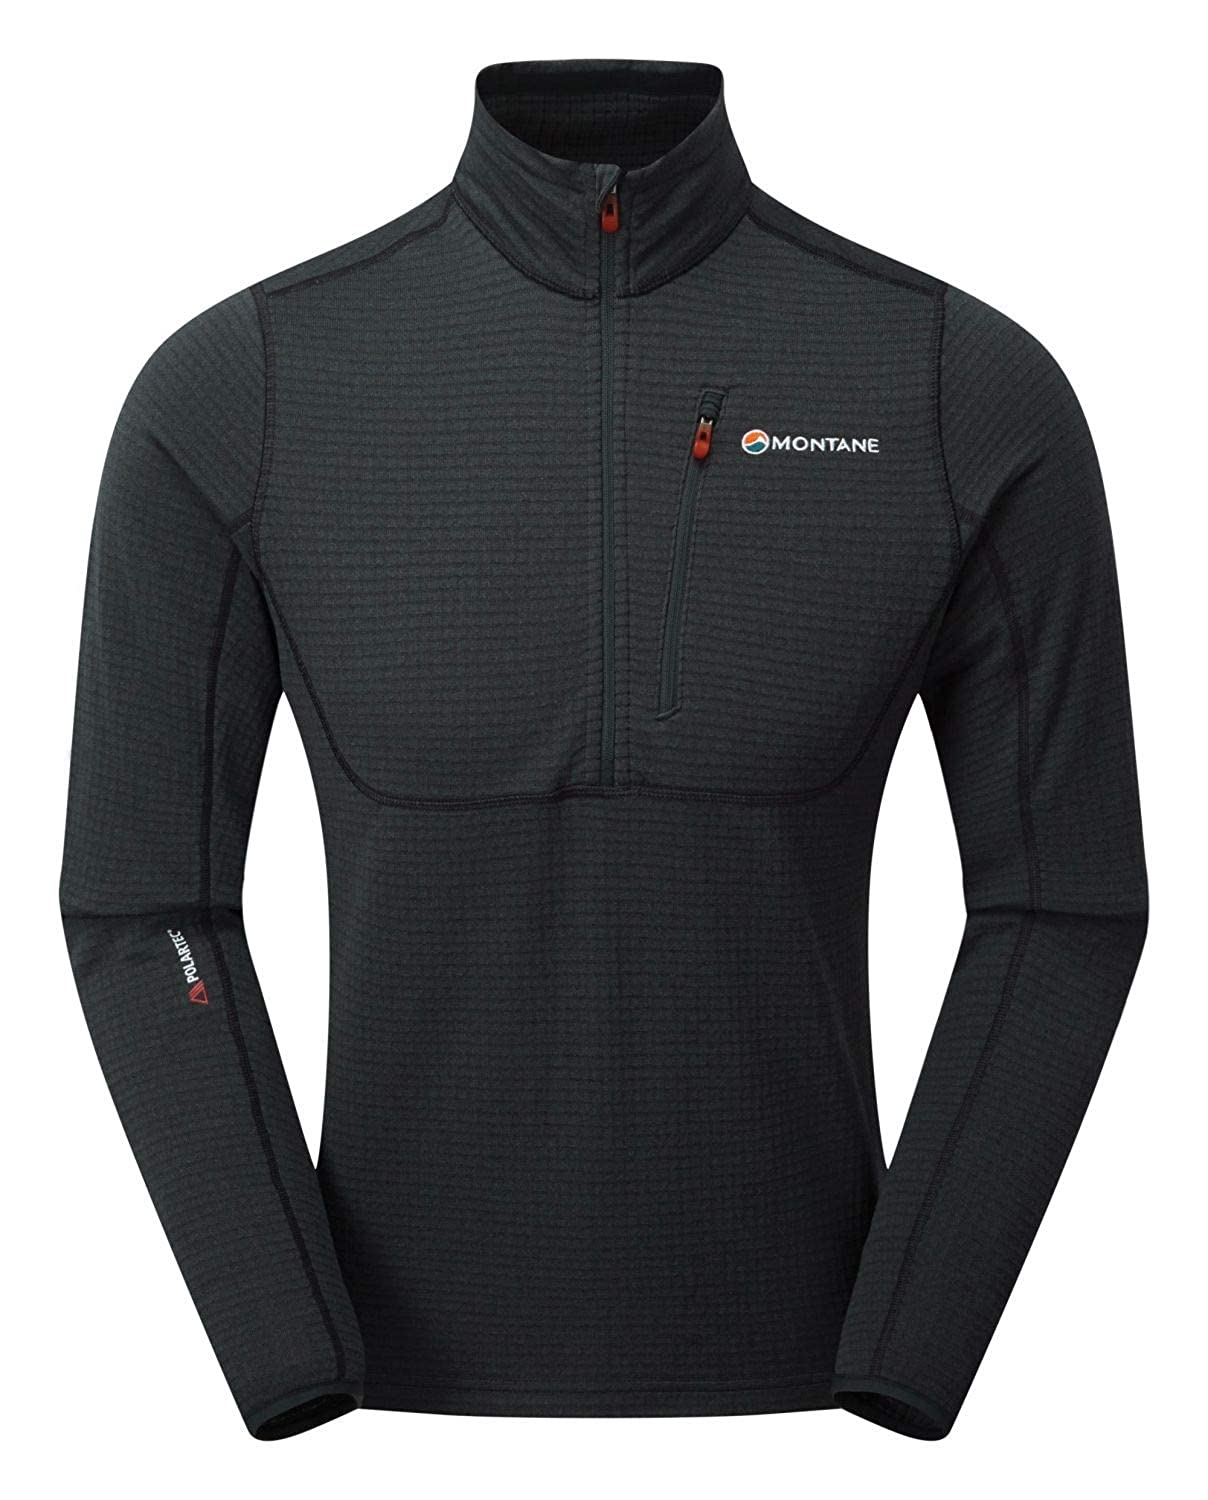 Montane Power up Pull-on Top - SS18